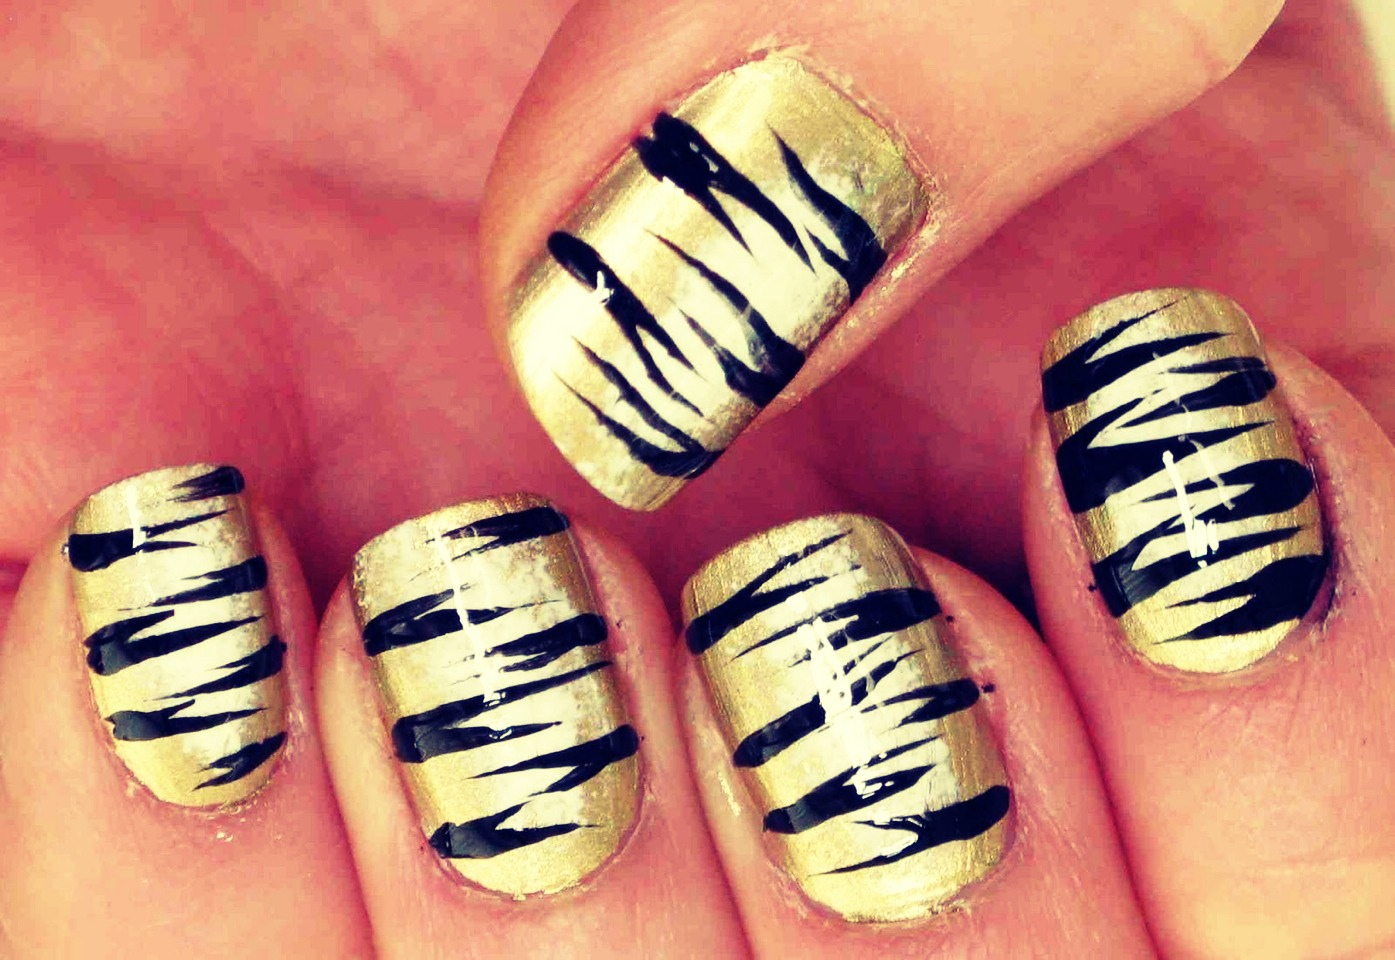 Use orange, gold, pink, yellow or light blue as your base. Take a black striper and starting from outer edges of your nail make a quick stripe in. After you have made stripes up the nail alternating sides. You can use black or a silver glitter striper to make second stripe under first stripes.